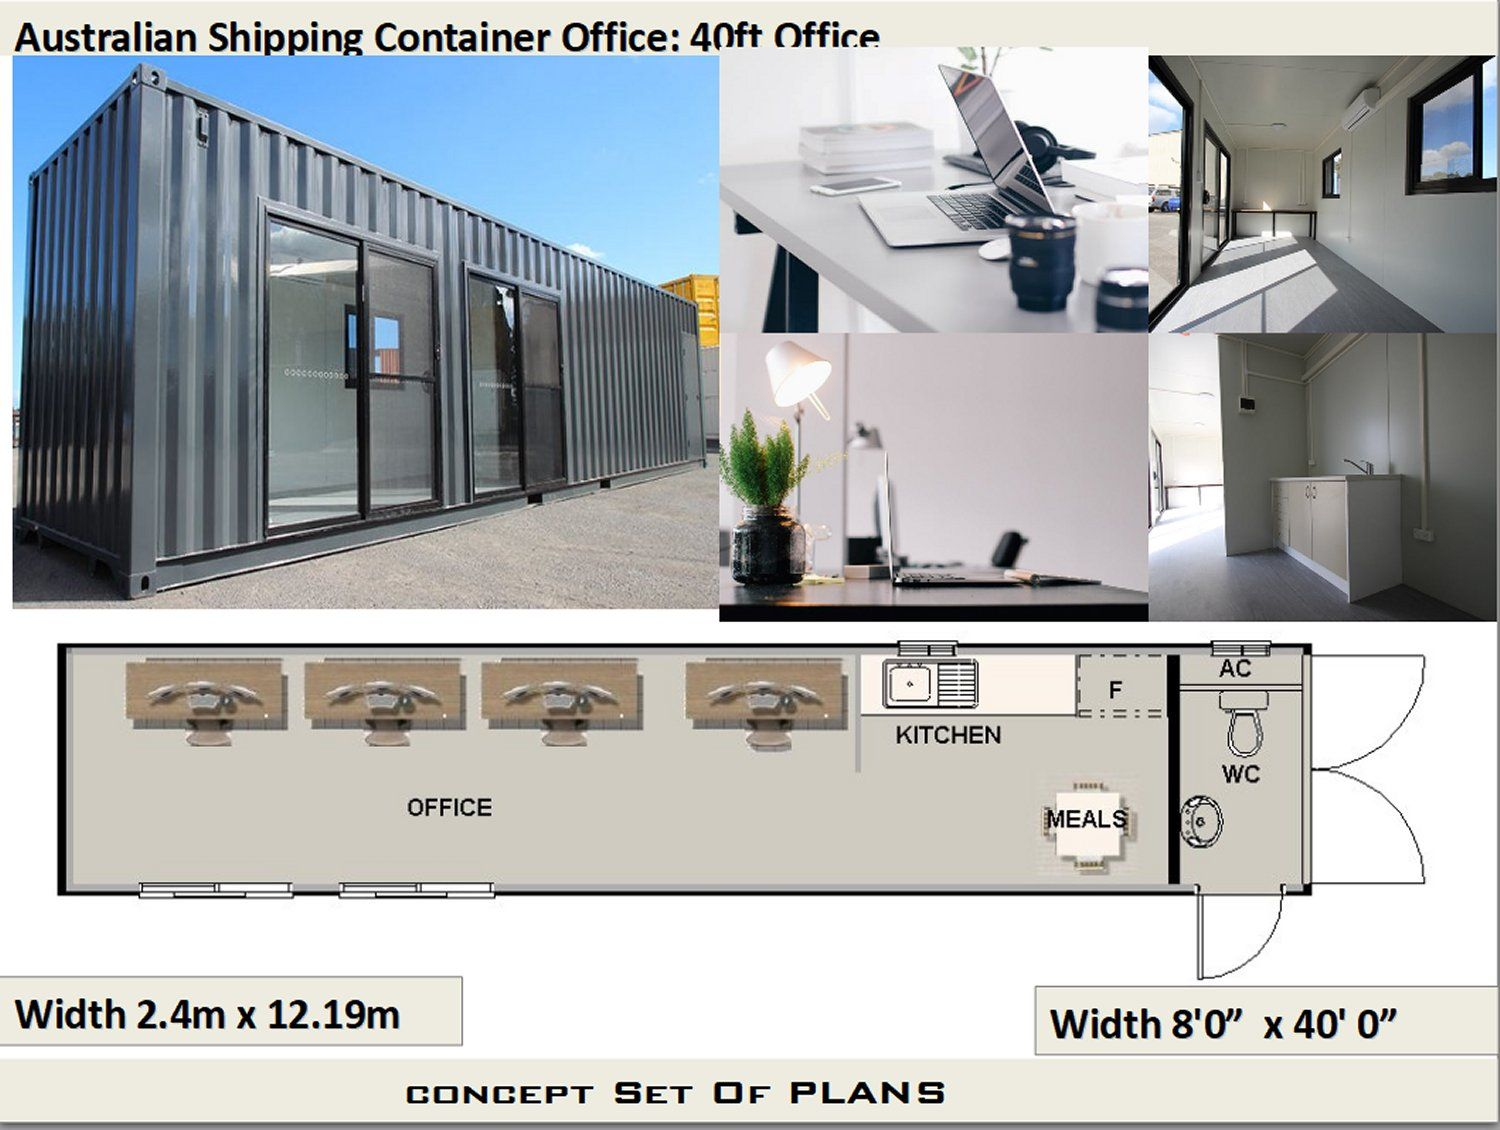 Shipping Container Office Plan Office For A 40 Feet Container Container Office Shipping Container Office Container House Plans